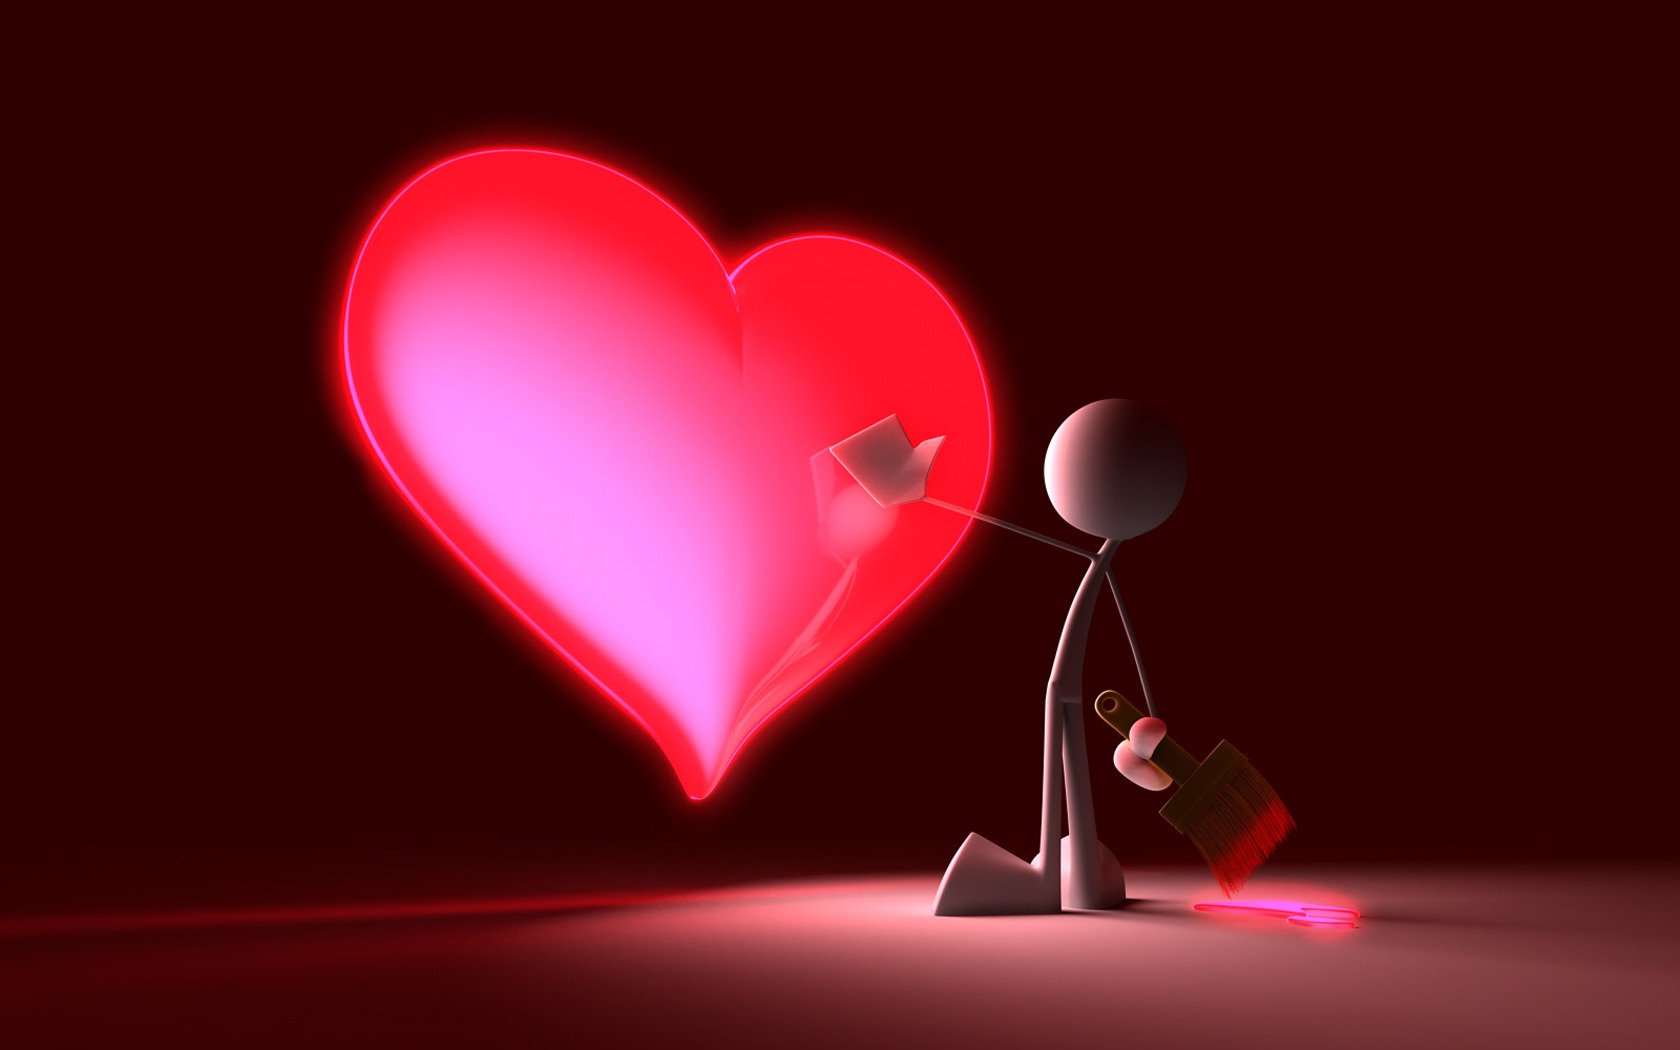 Touch My Heart Wallpaper 3D Characters Wallpapers